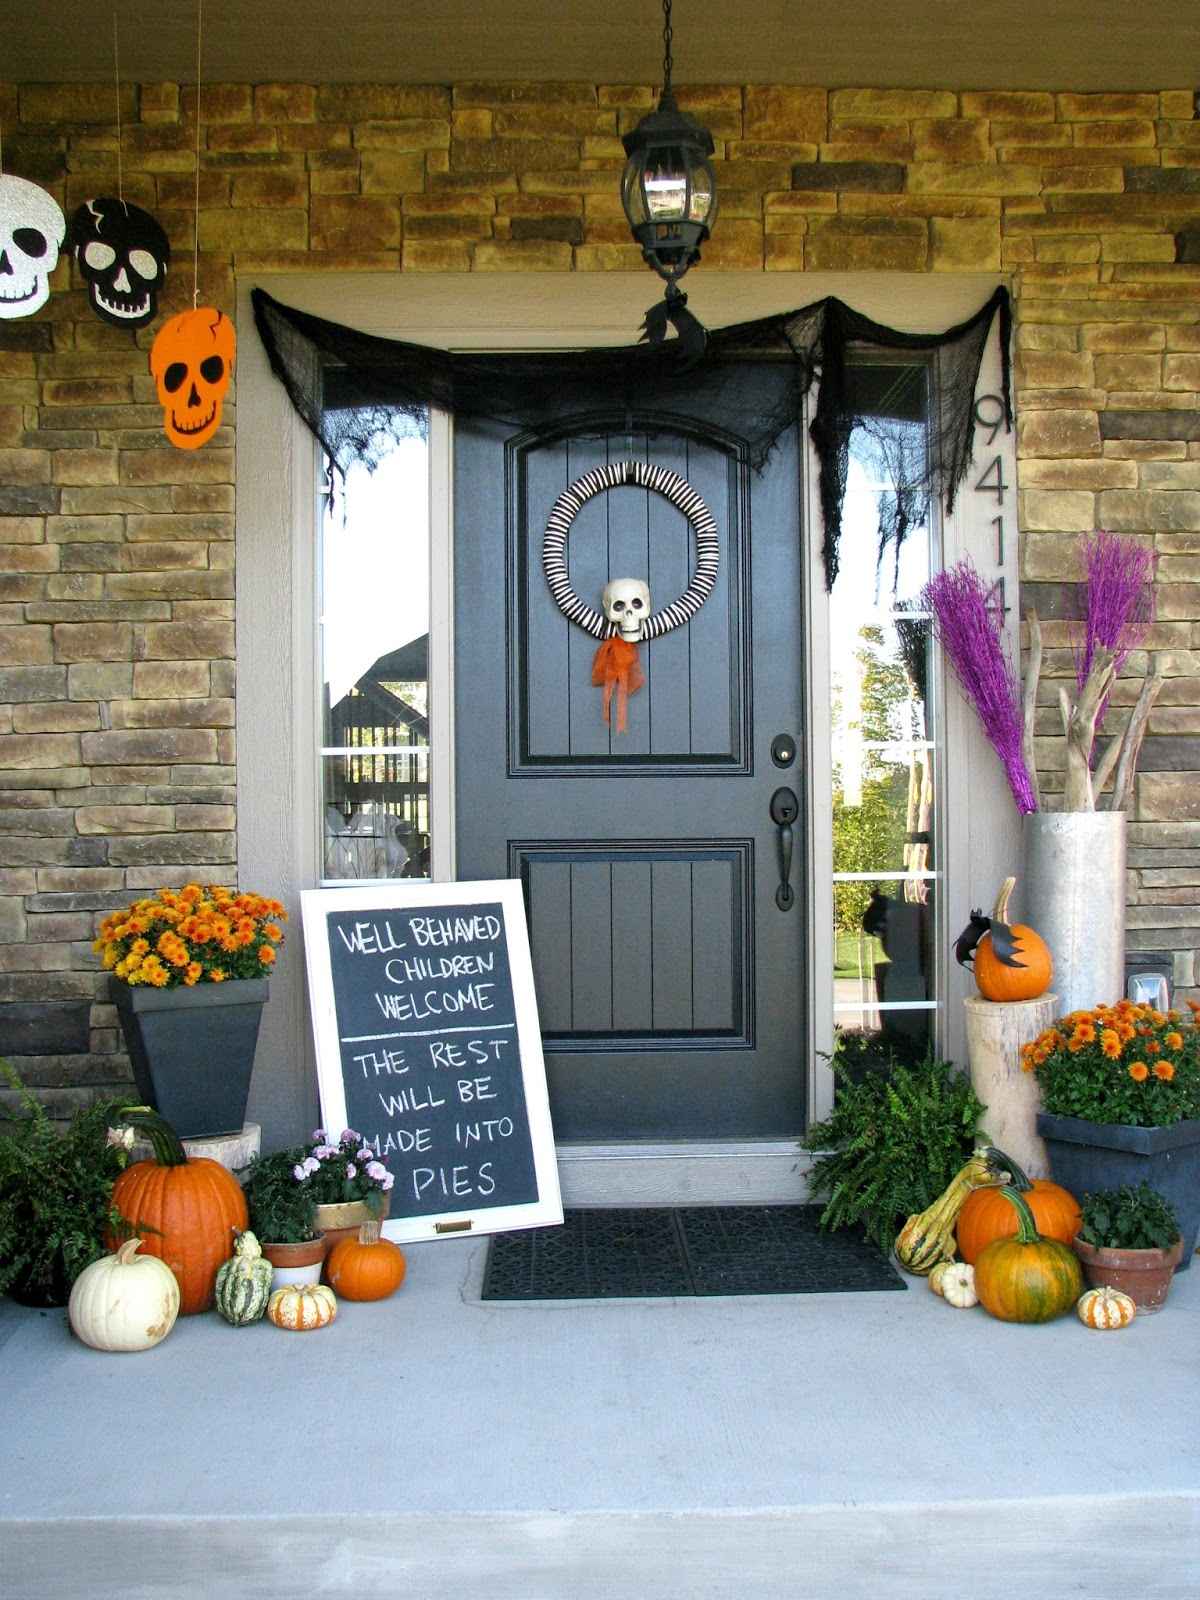 Decorating Ideas > Cute Halloween Front Porch Decorations To Greet Your Guests ~ 023923_Halloween Decorating Ideas Porch